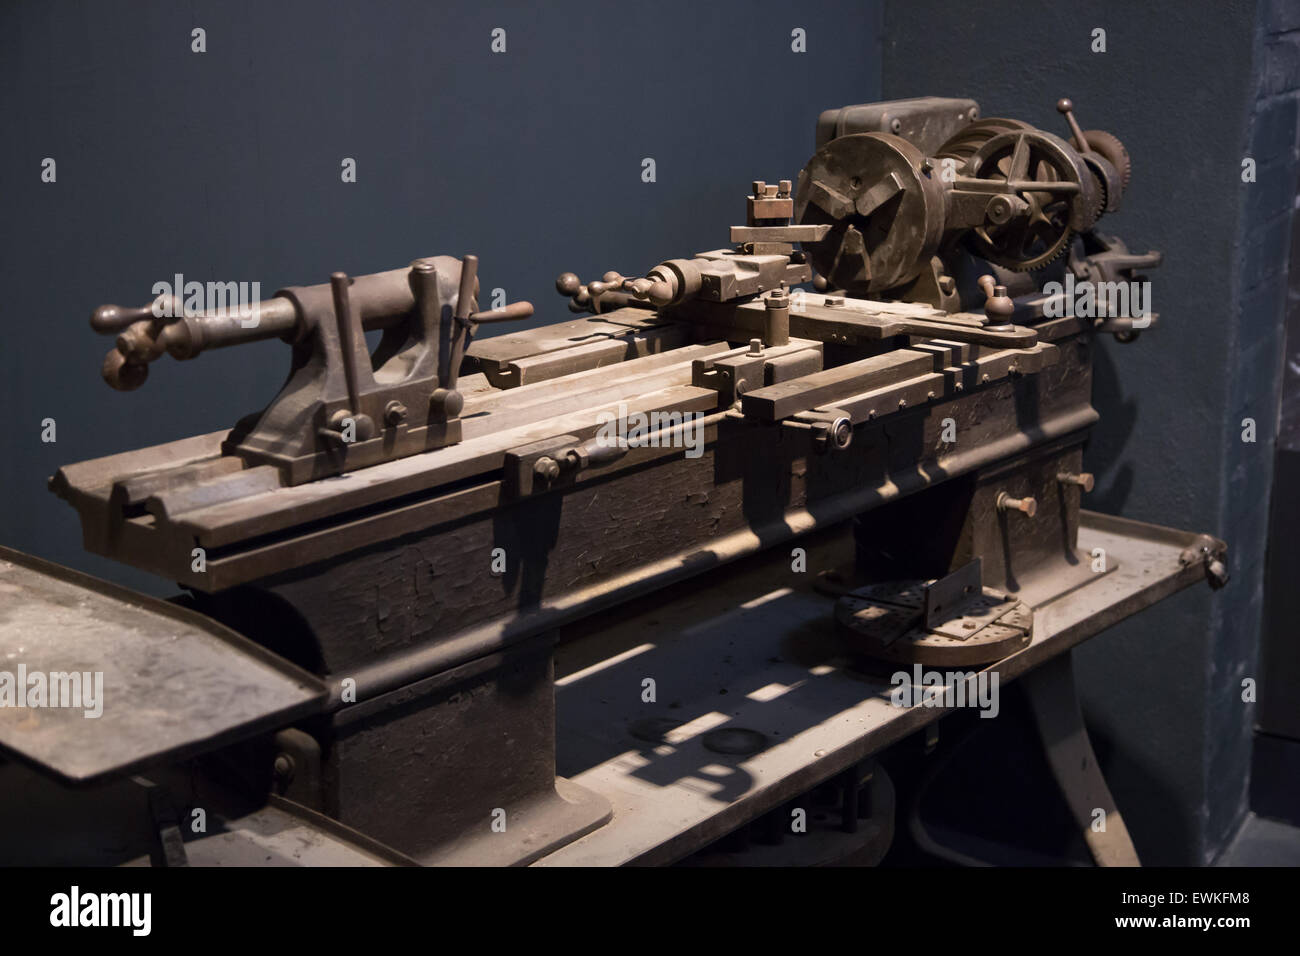 Old vintage lathe on display at Coventry Transport Museum - Stock Image